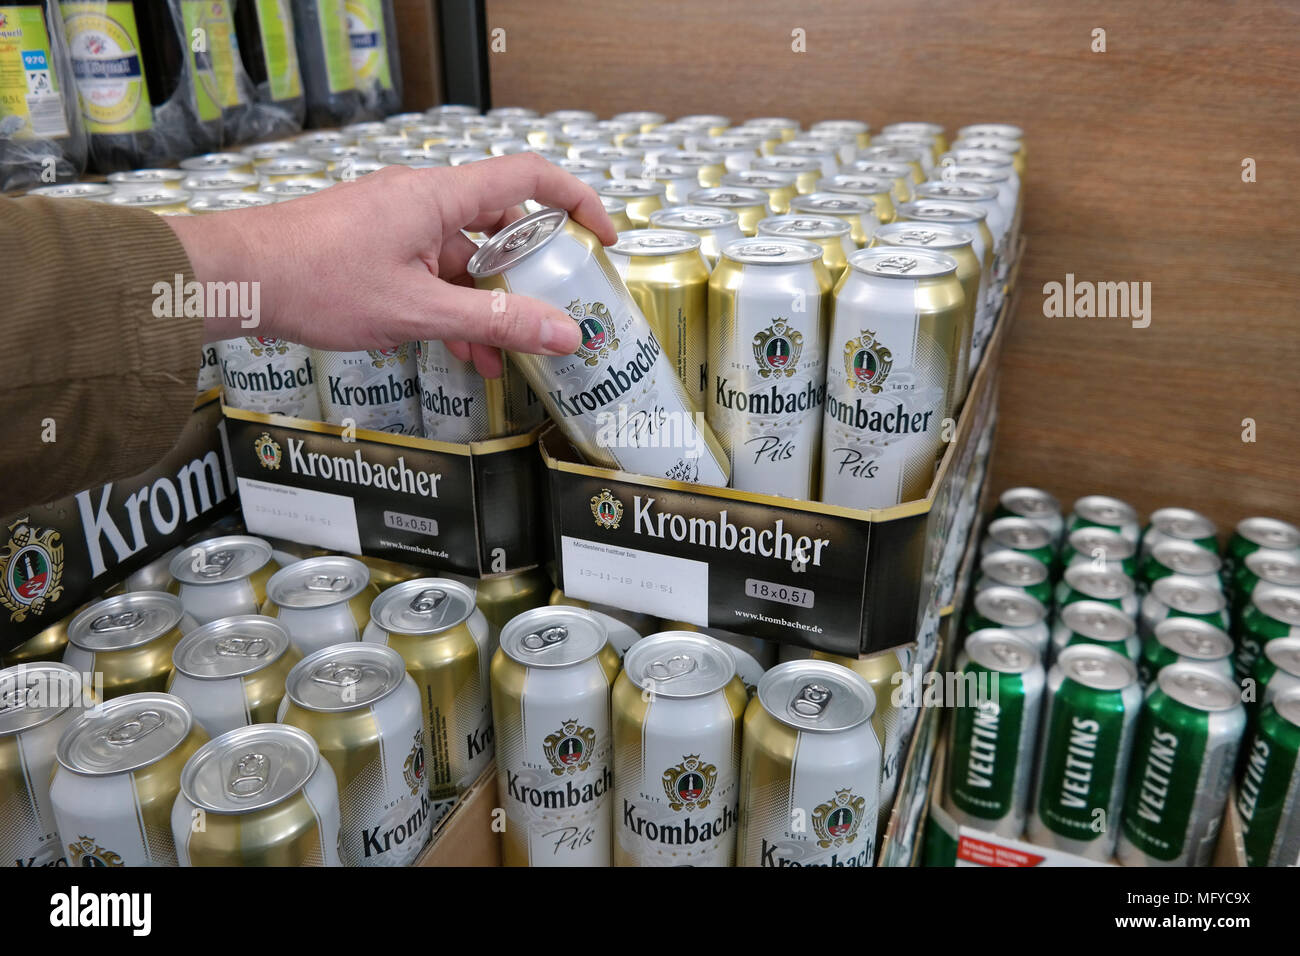 Krombacher beer in a store - Stock Image